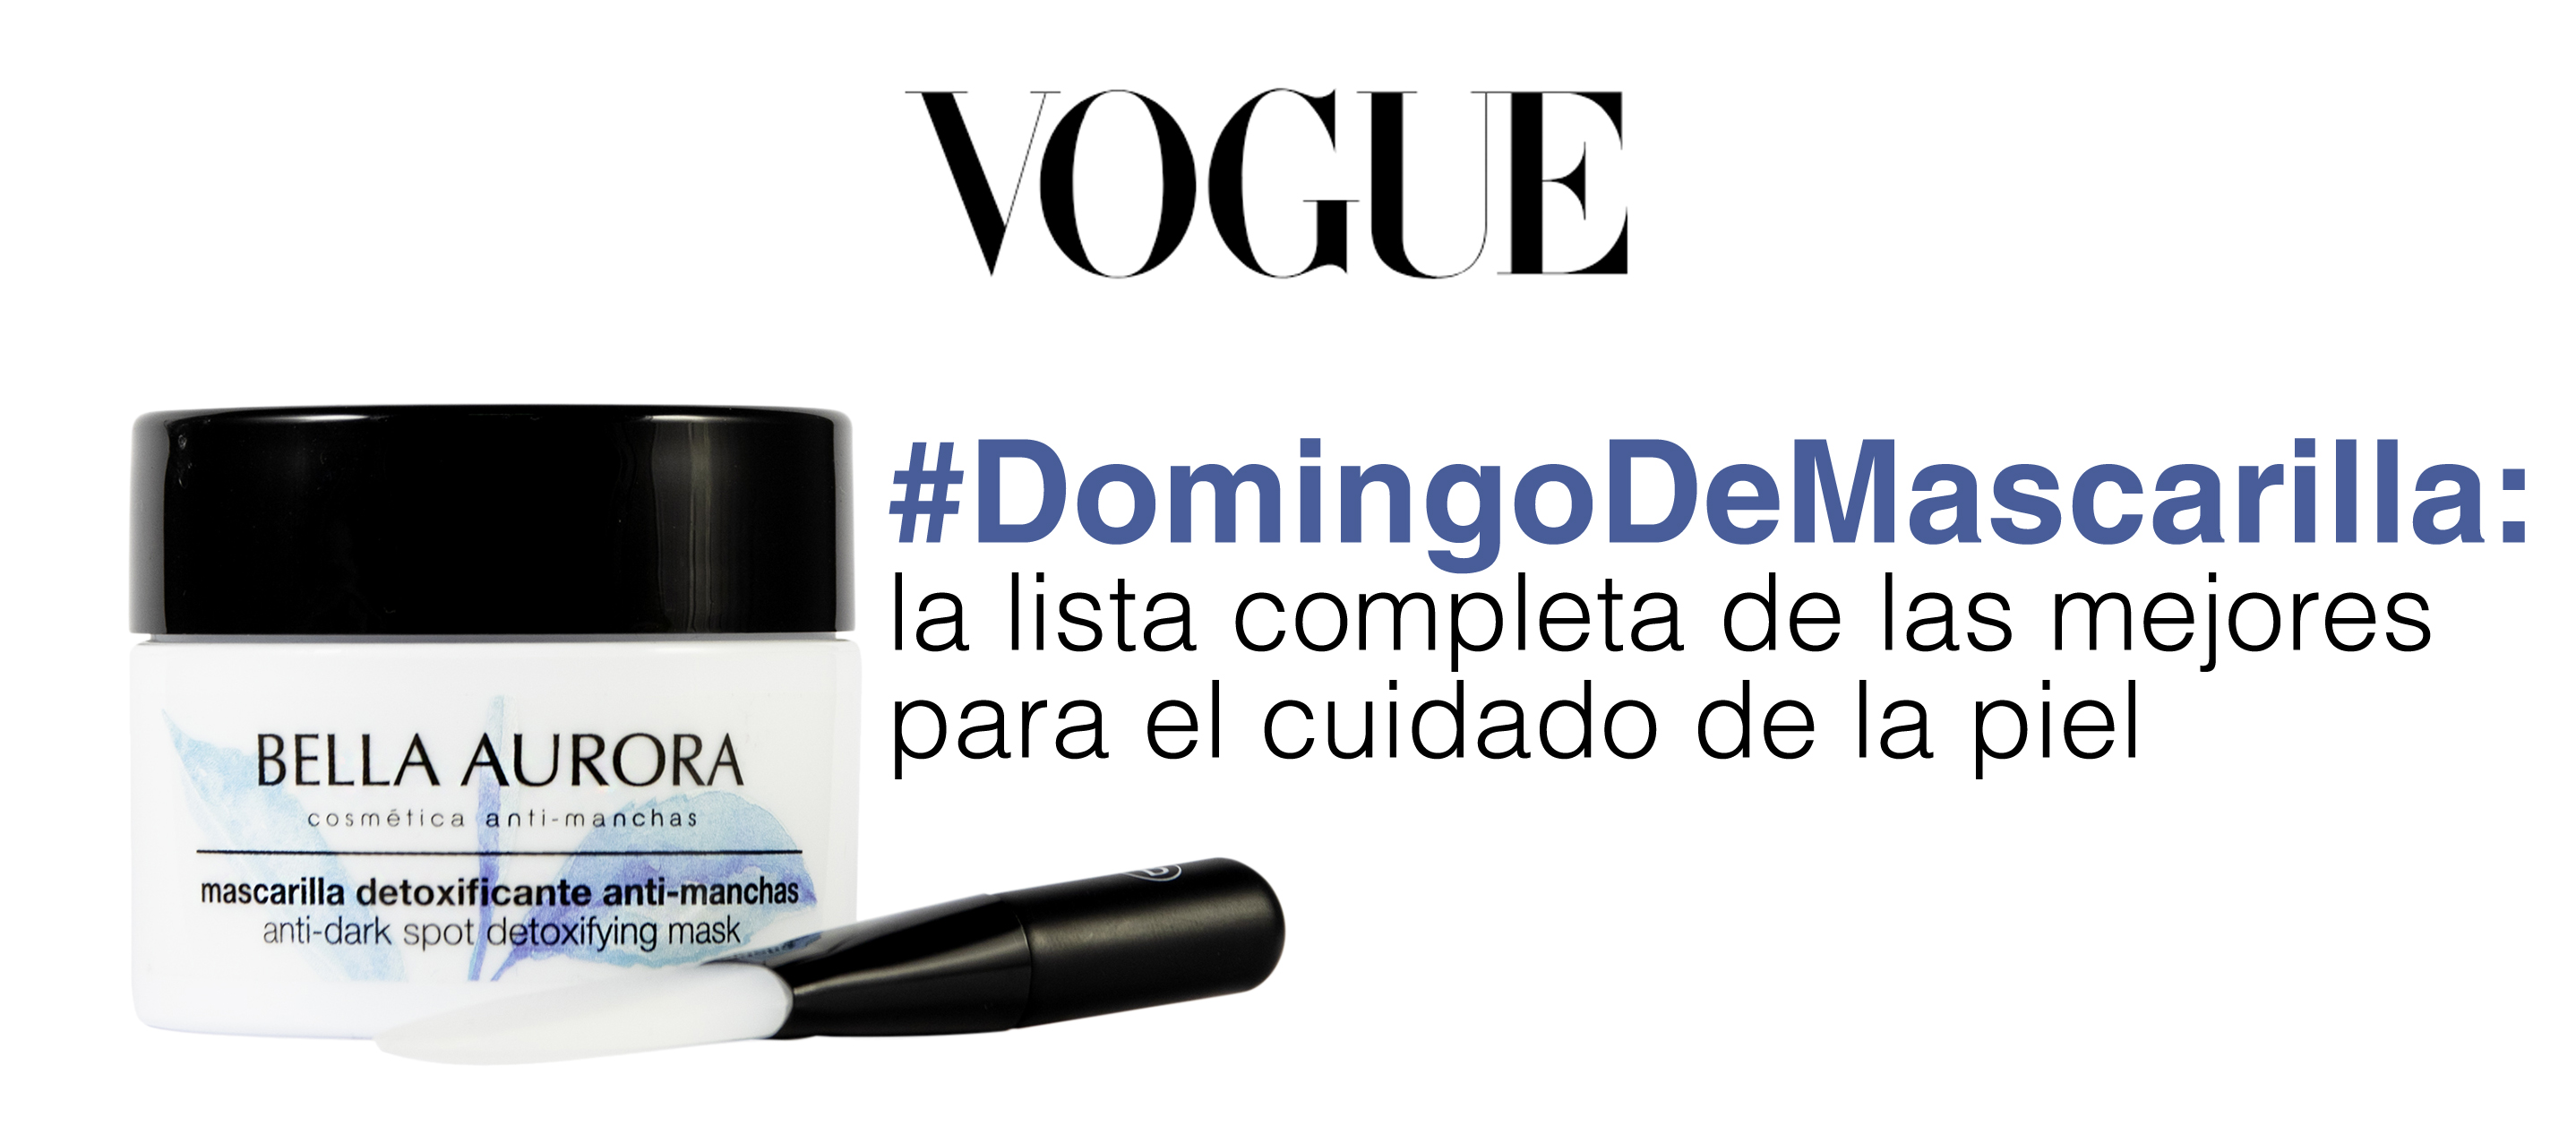 ¿El #DomingoDeMascarilla de Vogue? ¡Con Bella Aurora!